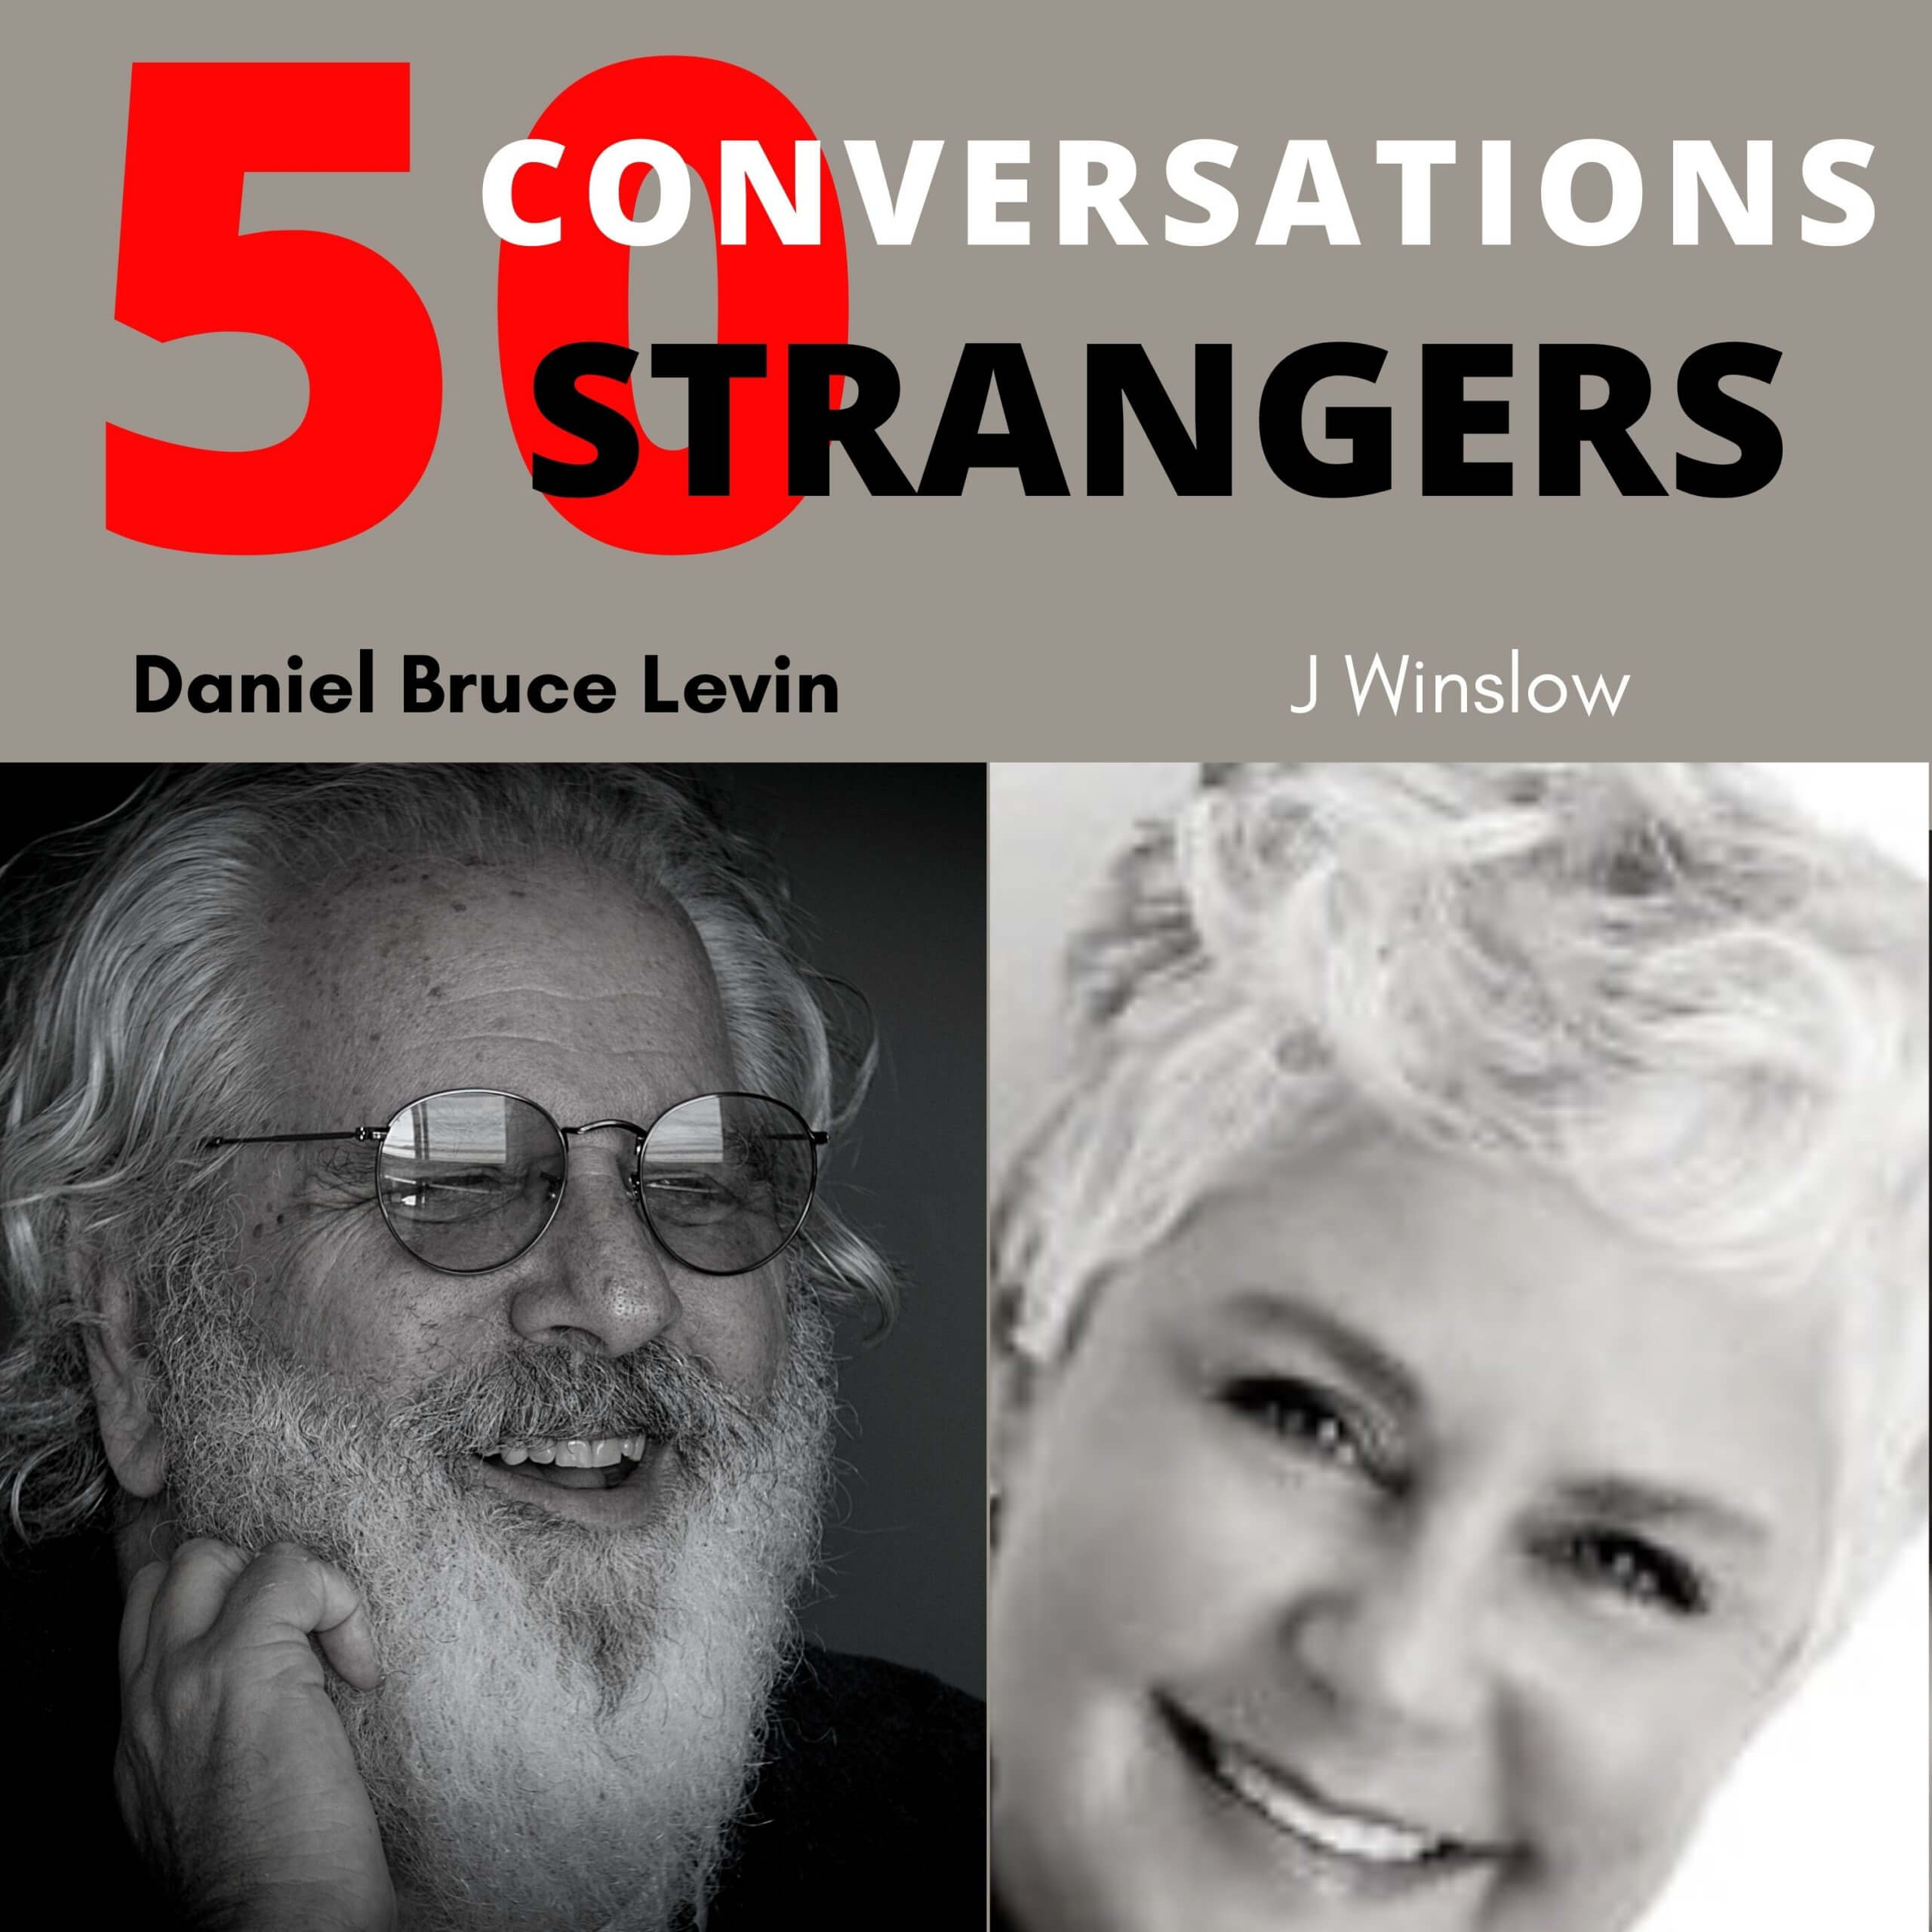 50 Conversations with 50 Strangers with J. Winslow